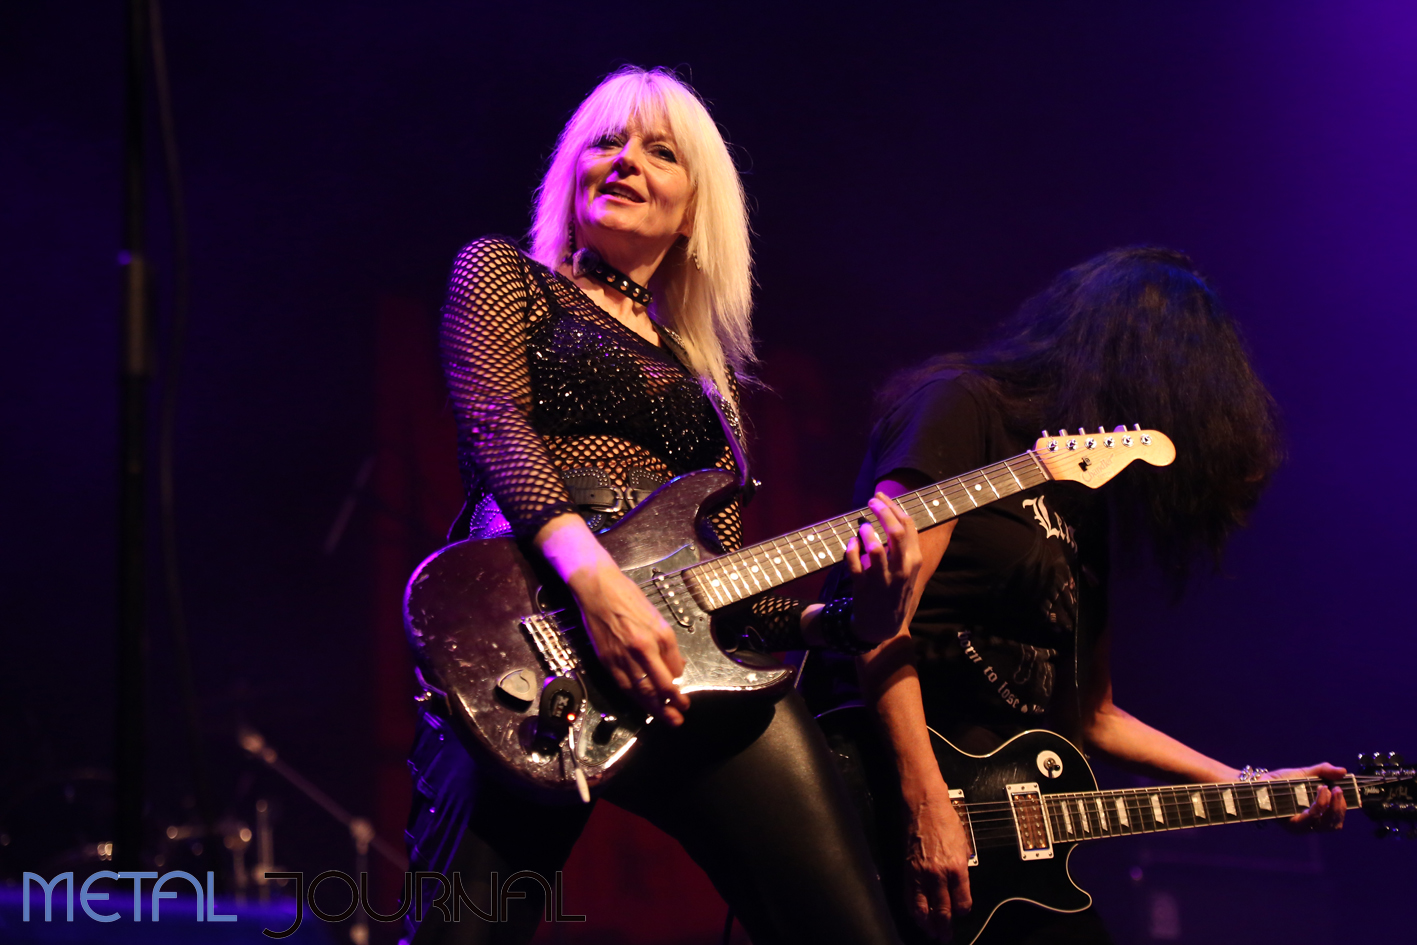 girlschool - metal journal 2018 pic 7